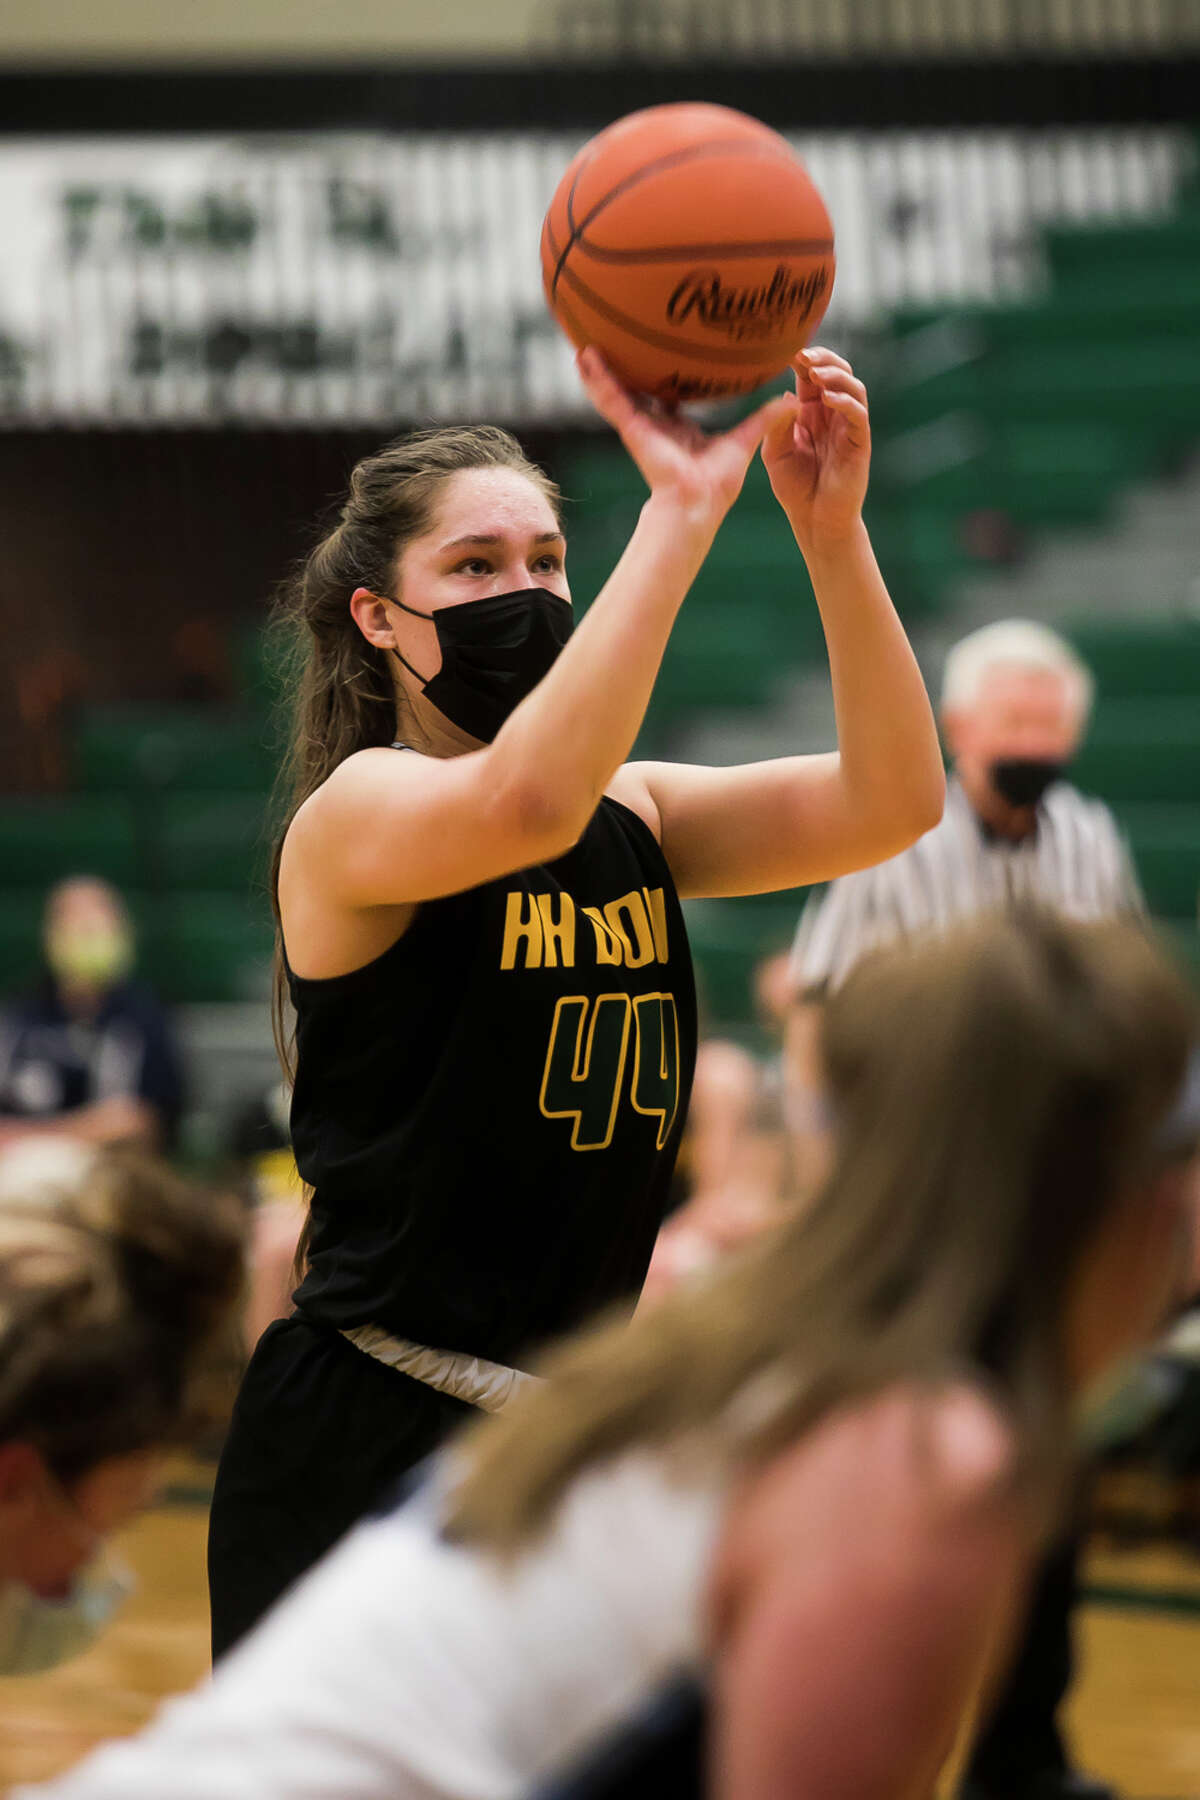 Dow's Abby Rey shoots a free throw during the Chargers' regional semifinal against Petoskey Monday, March 29, 2021 at Houghton Lake High School. (Katy Kildee/kkildee@mdn.net)